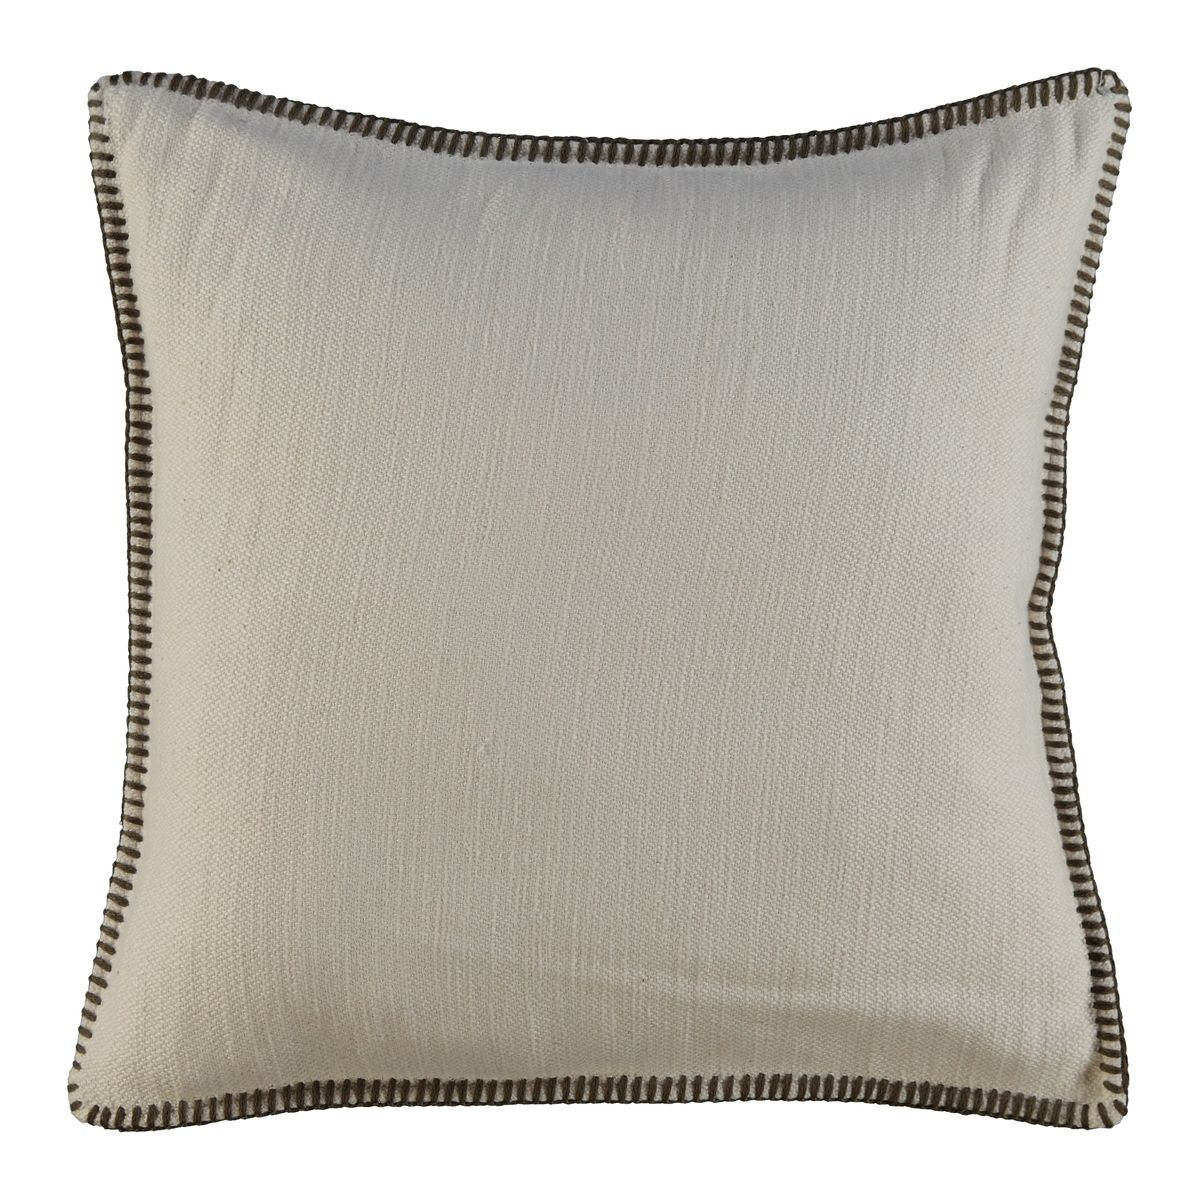 Cushion Cover - Simple / Brown Stitched